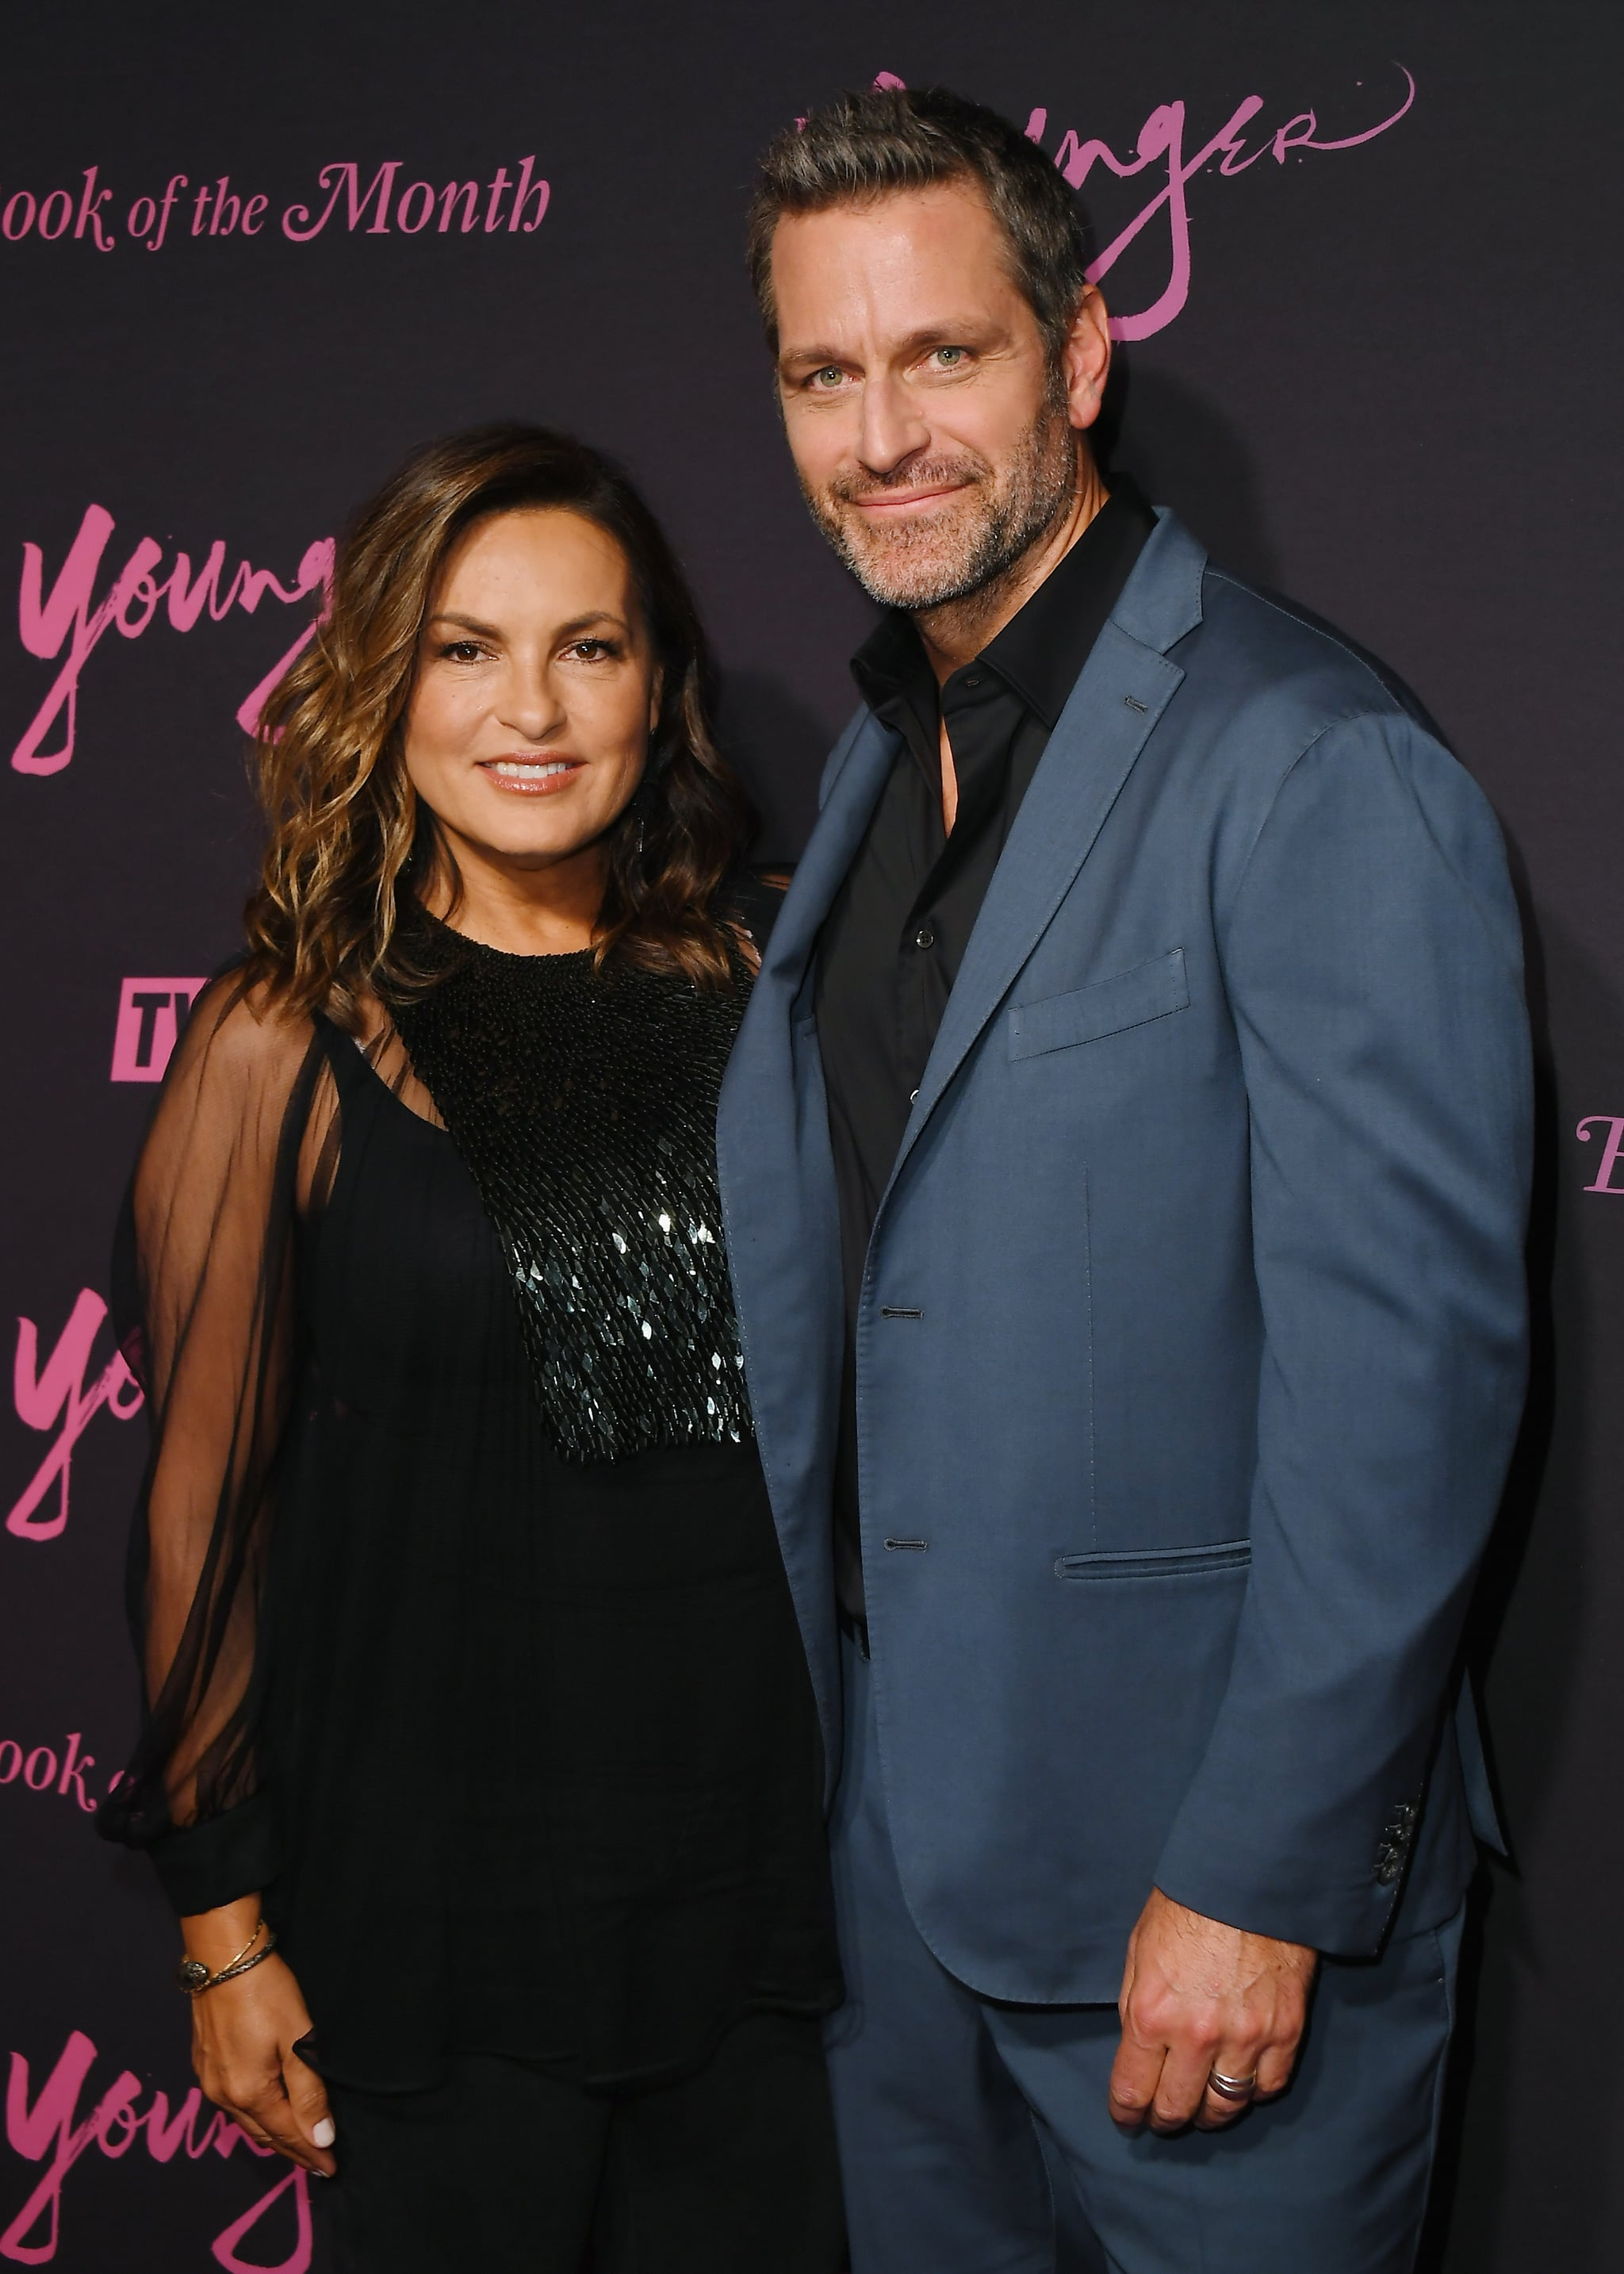 NEW YORK, NEW YORK - JUNE 04: Mariska Hargitay and Peter Hermann attend the screening of